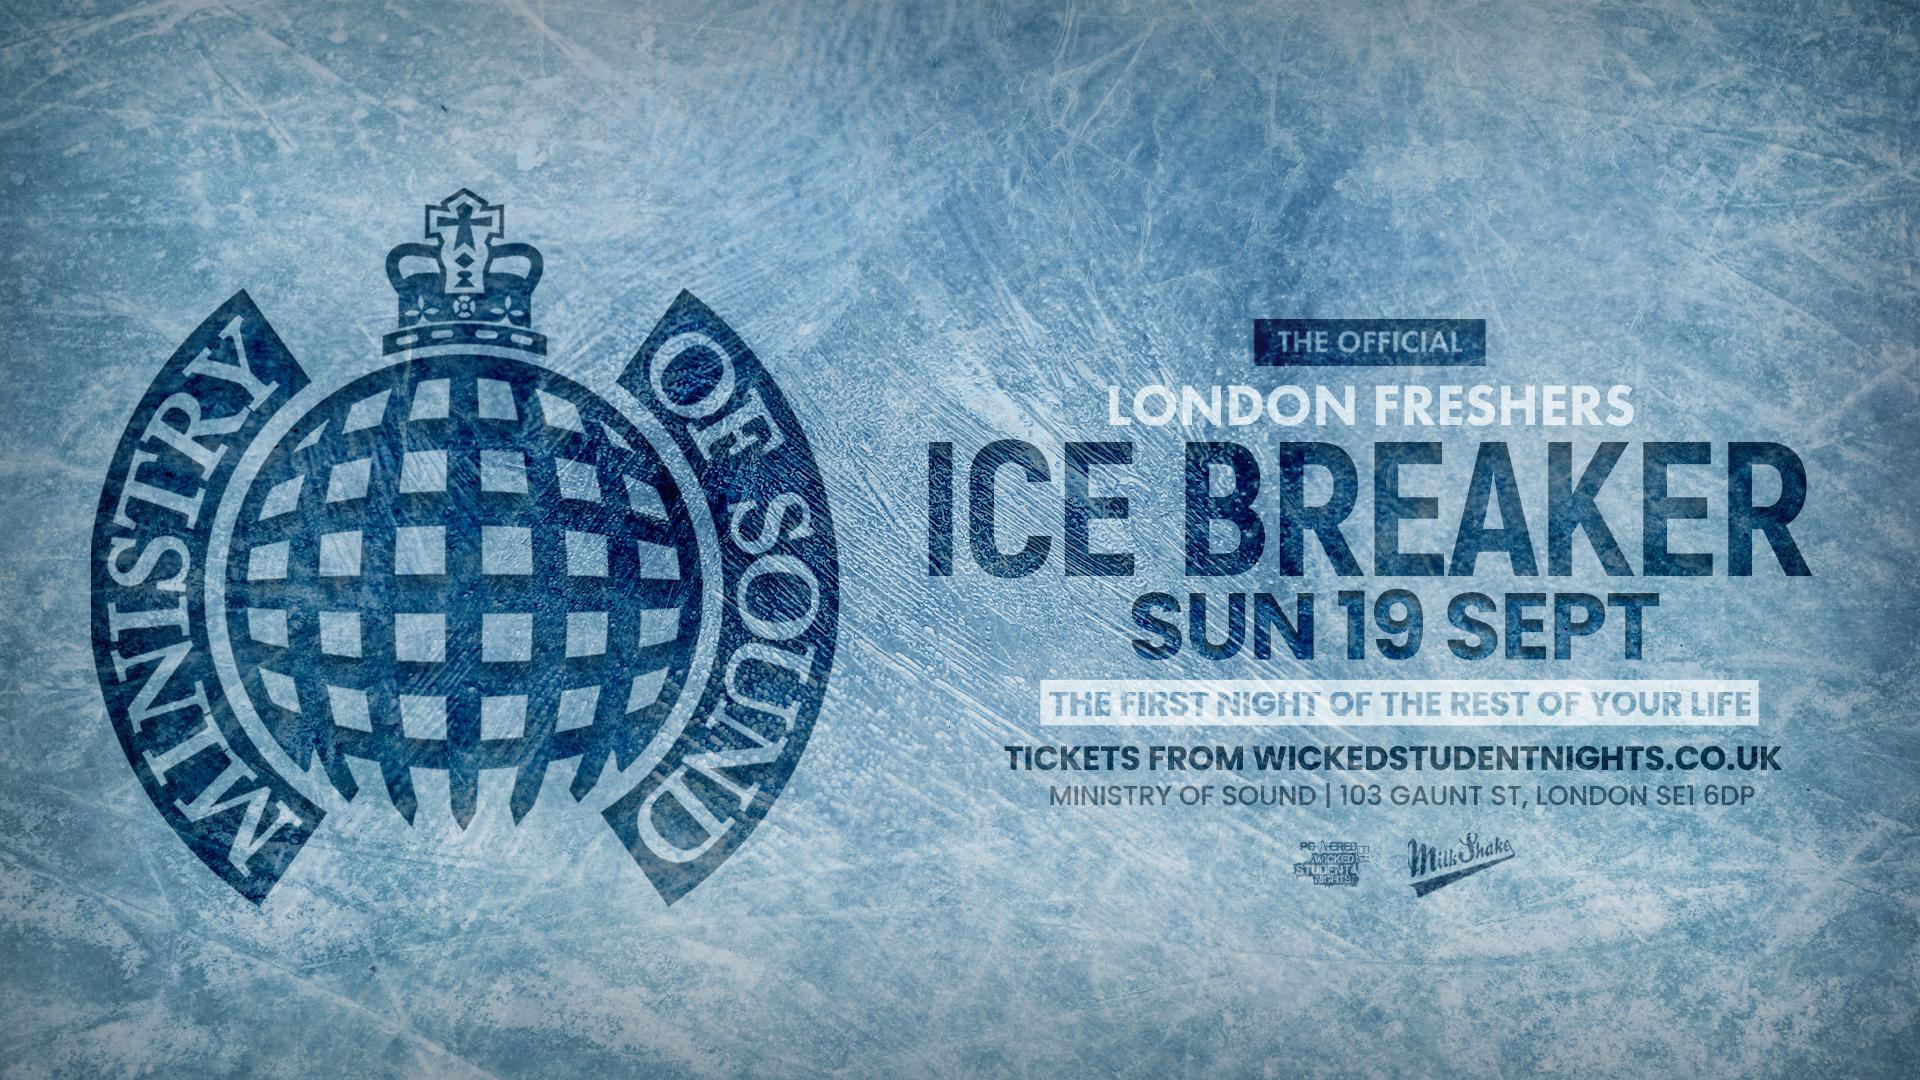 The Official London Freshers Ice breaker 2021